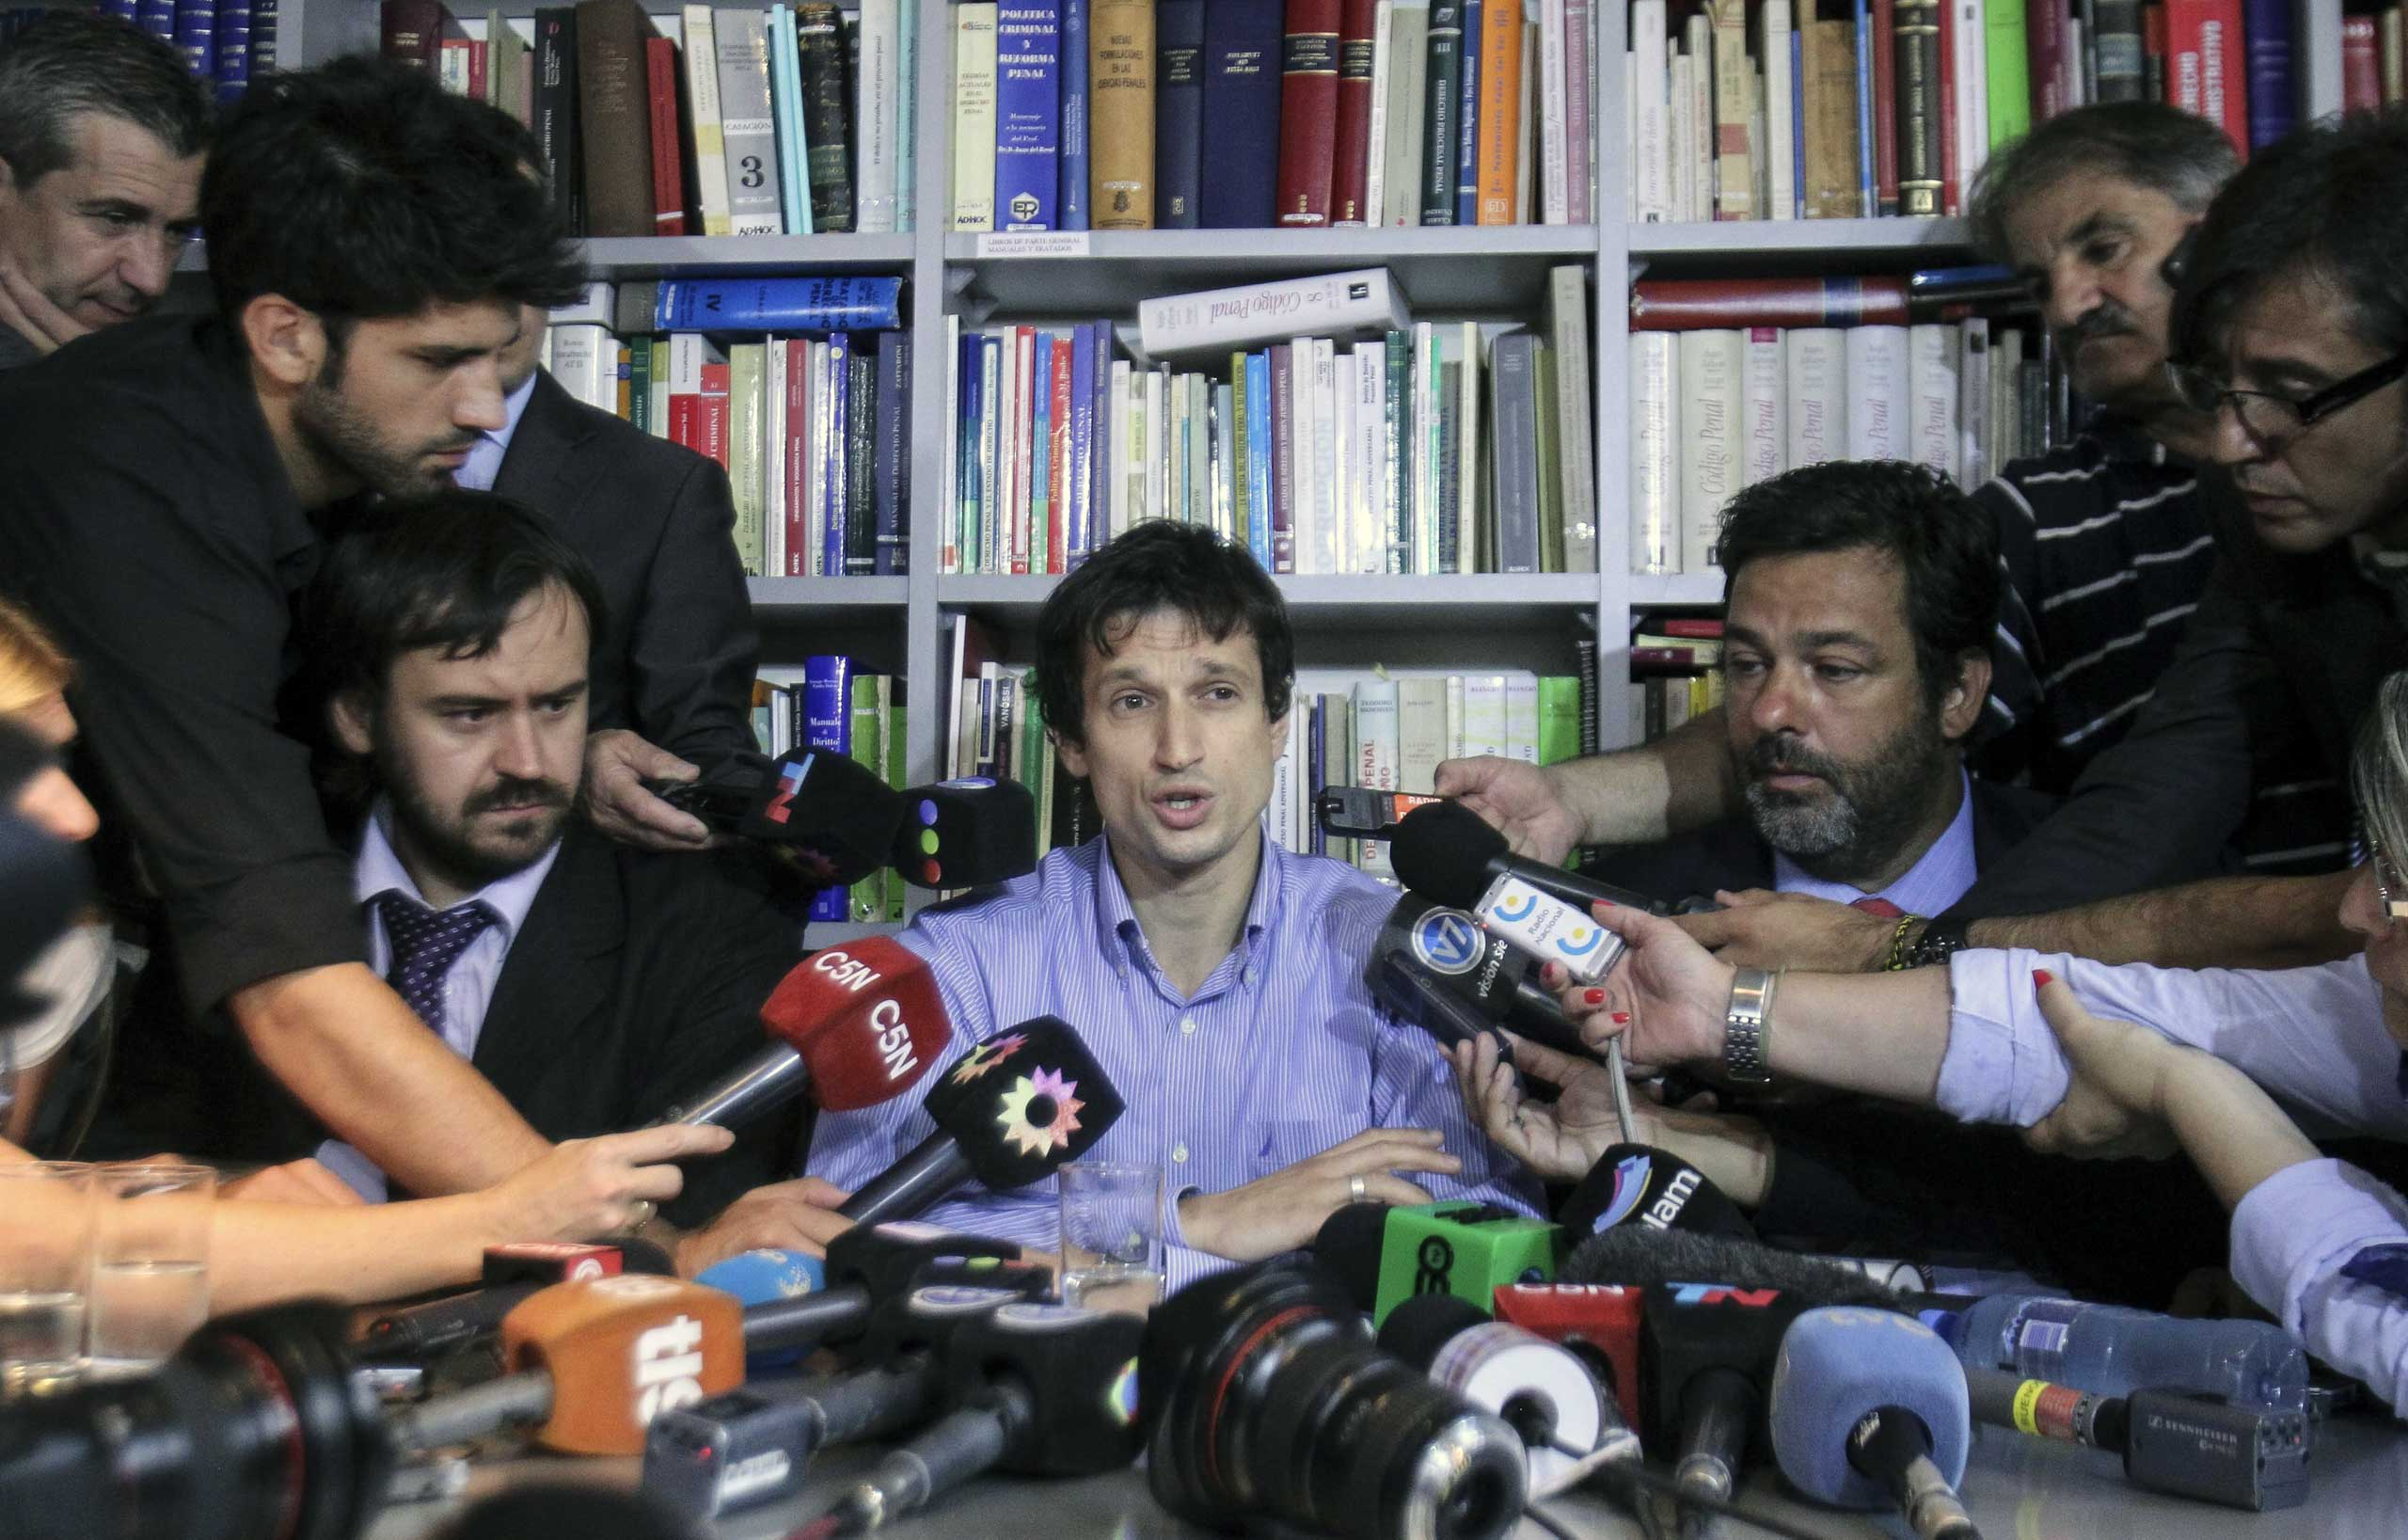 Diego Lagomarsino, assistant of late prosecutor Alberto Nisman speaks during a press conference in Buenos Aires, Jan. 28, 2015.